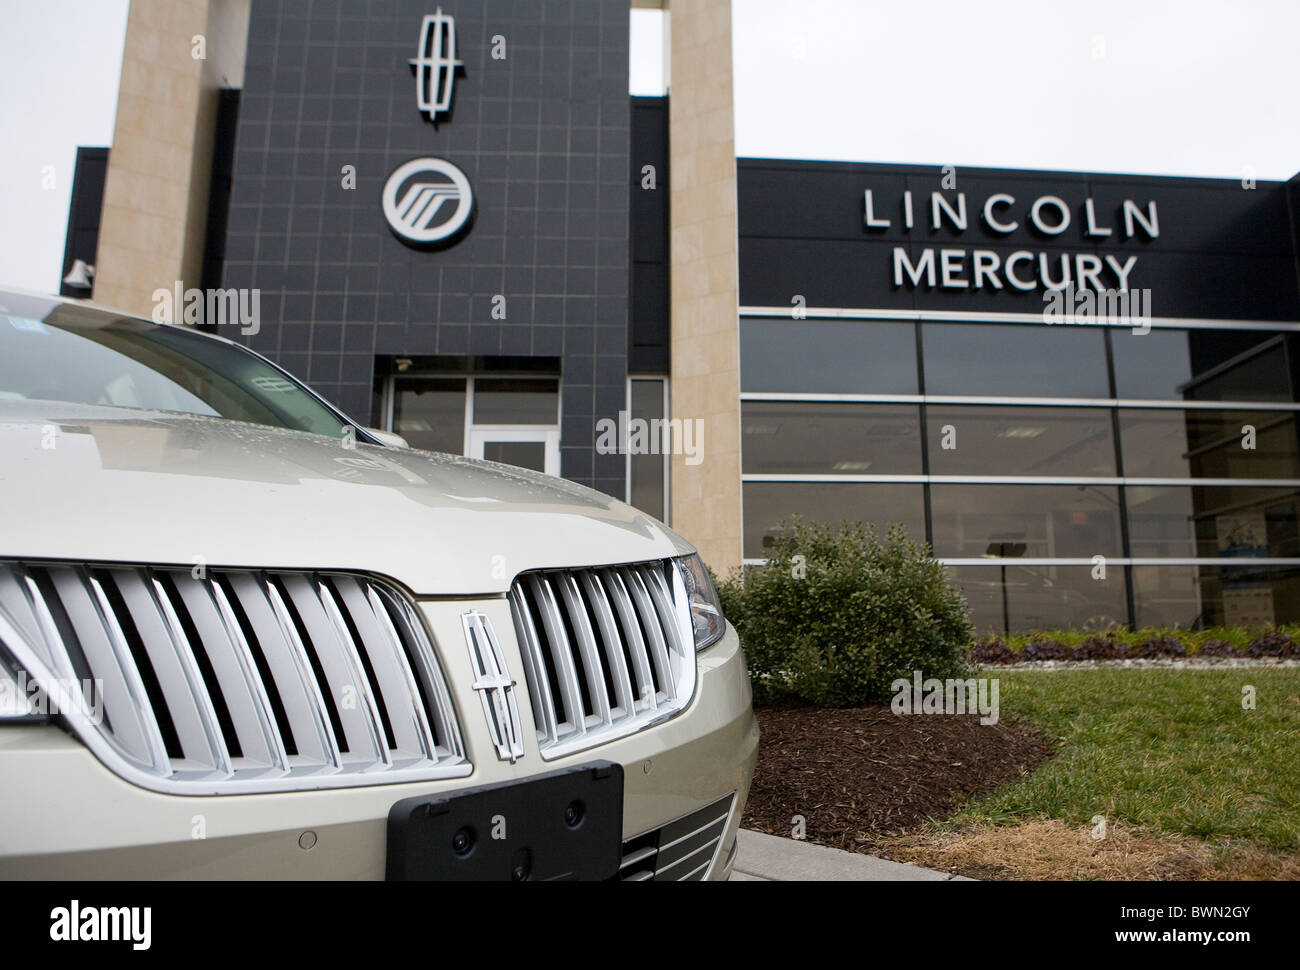 A Ford Lincoln And Mercury Car Dealership Stock Photo 33039803 Alamy